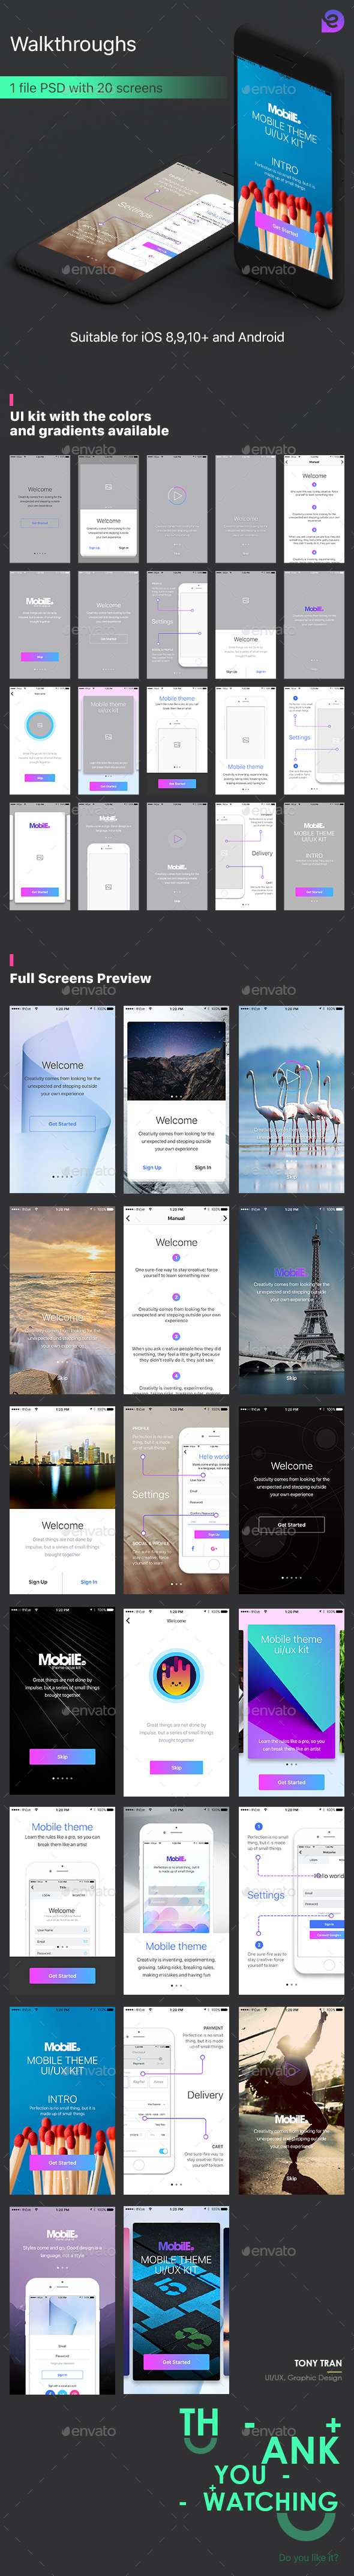 Mobile Theme UI Kit | Walkthroughs (User Interfaces)